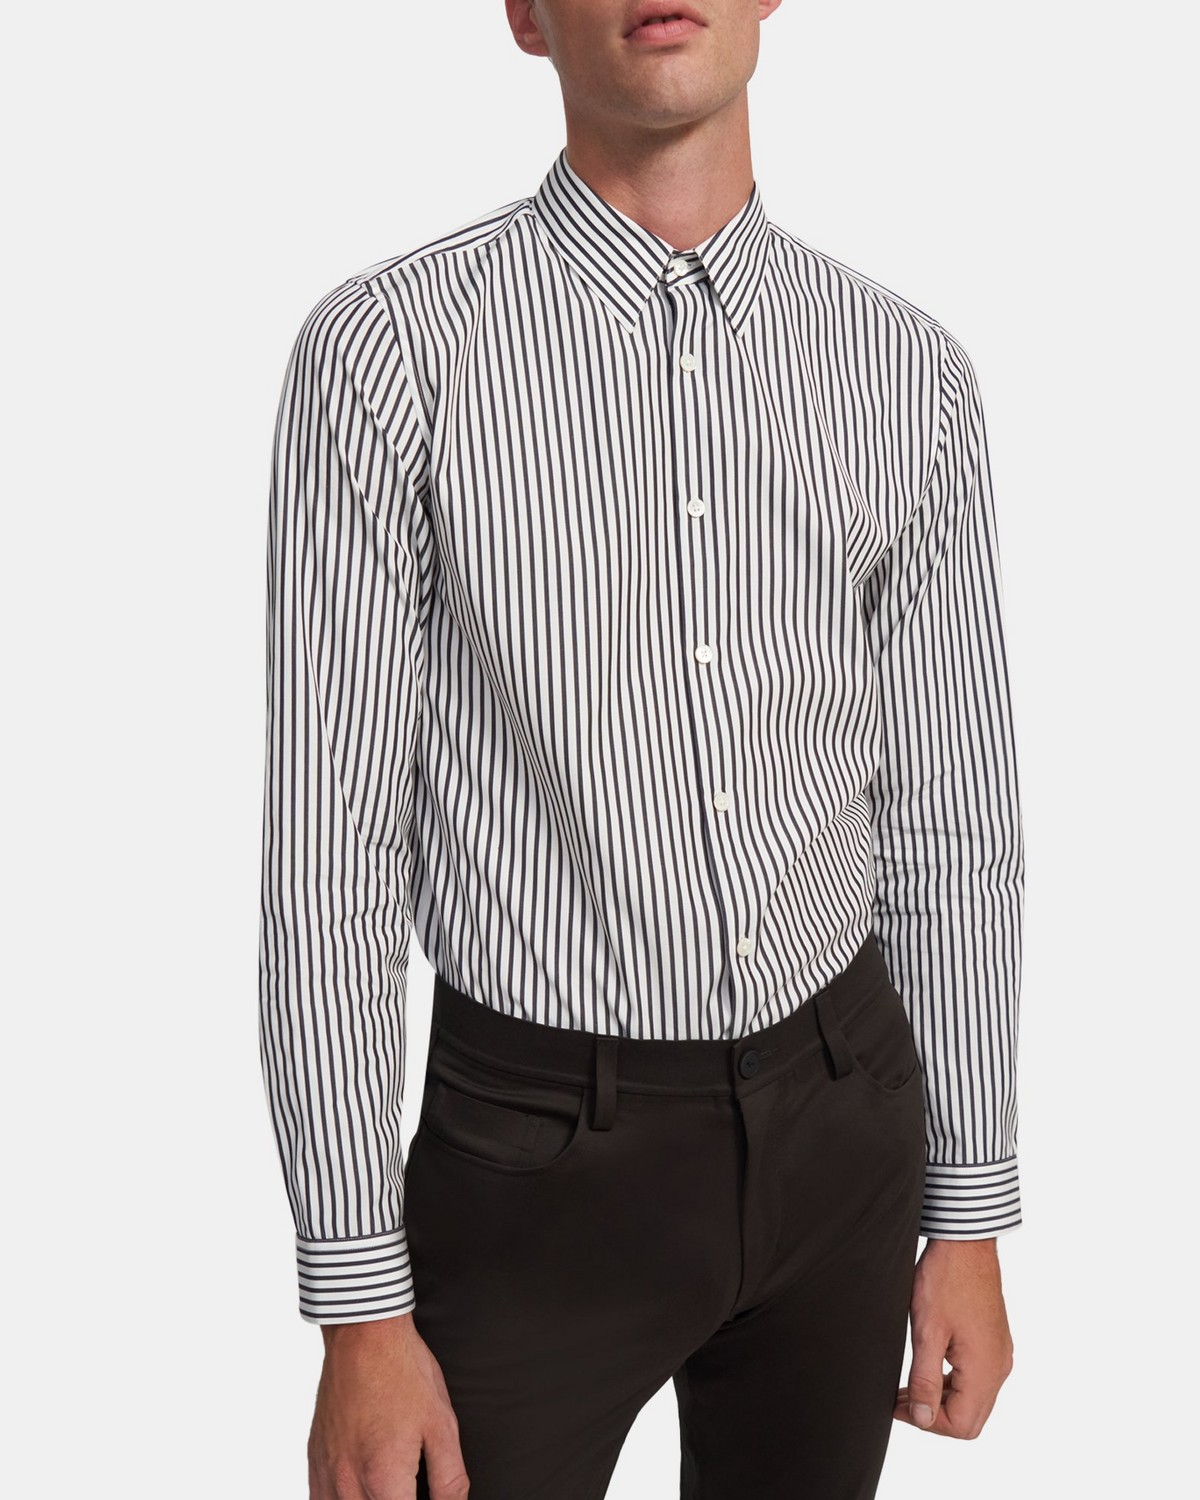 Irving Shirt in Striped Organic Cotton